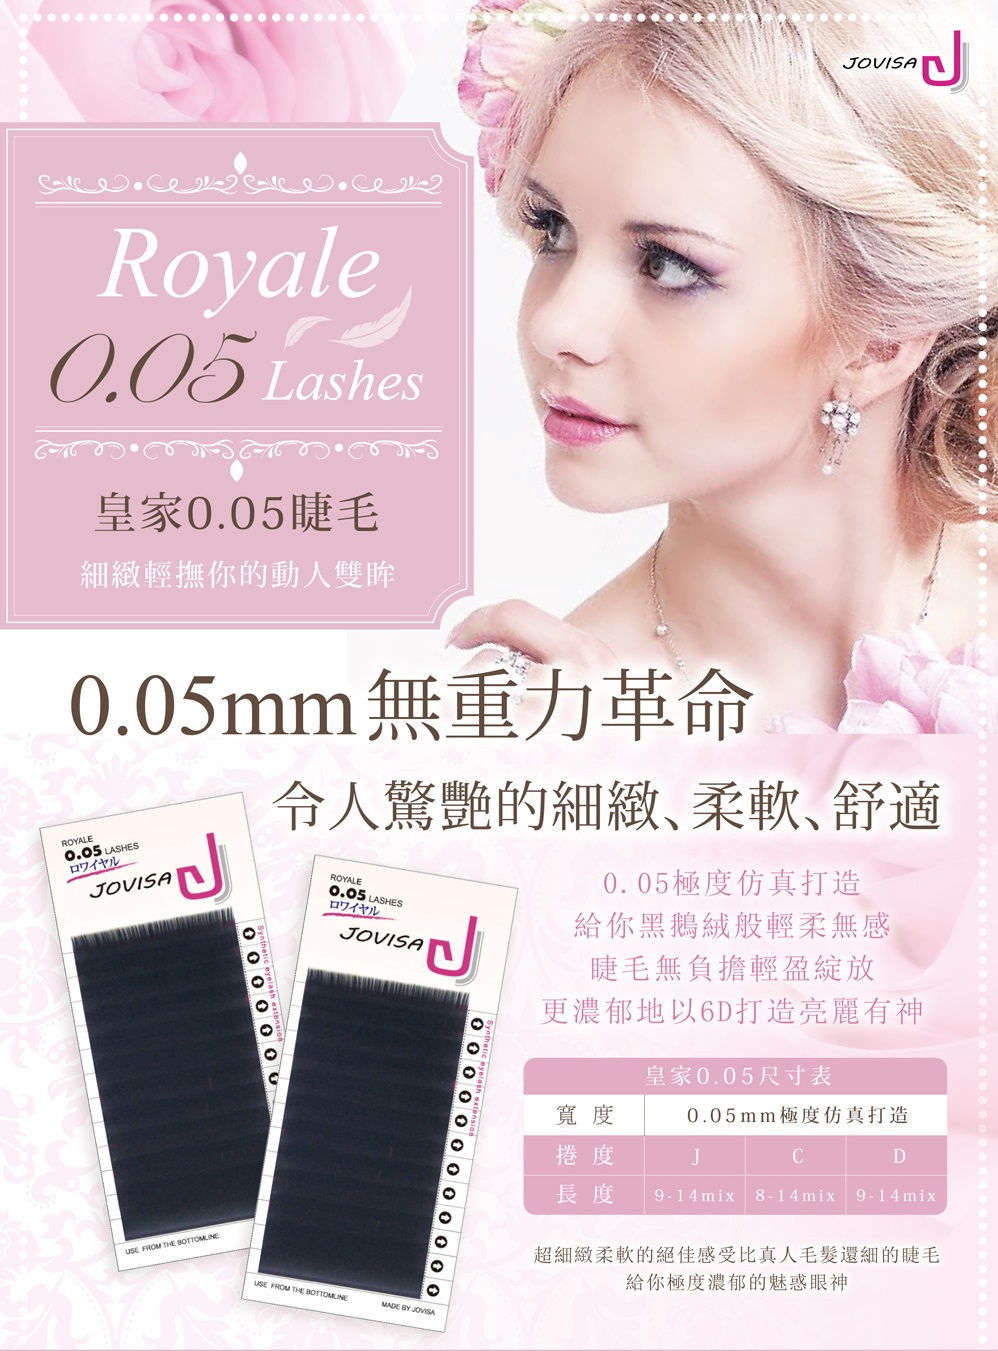 Jovisa Royale 0.05 Lashes